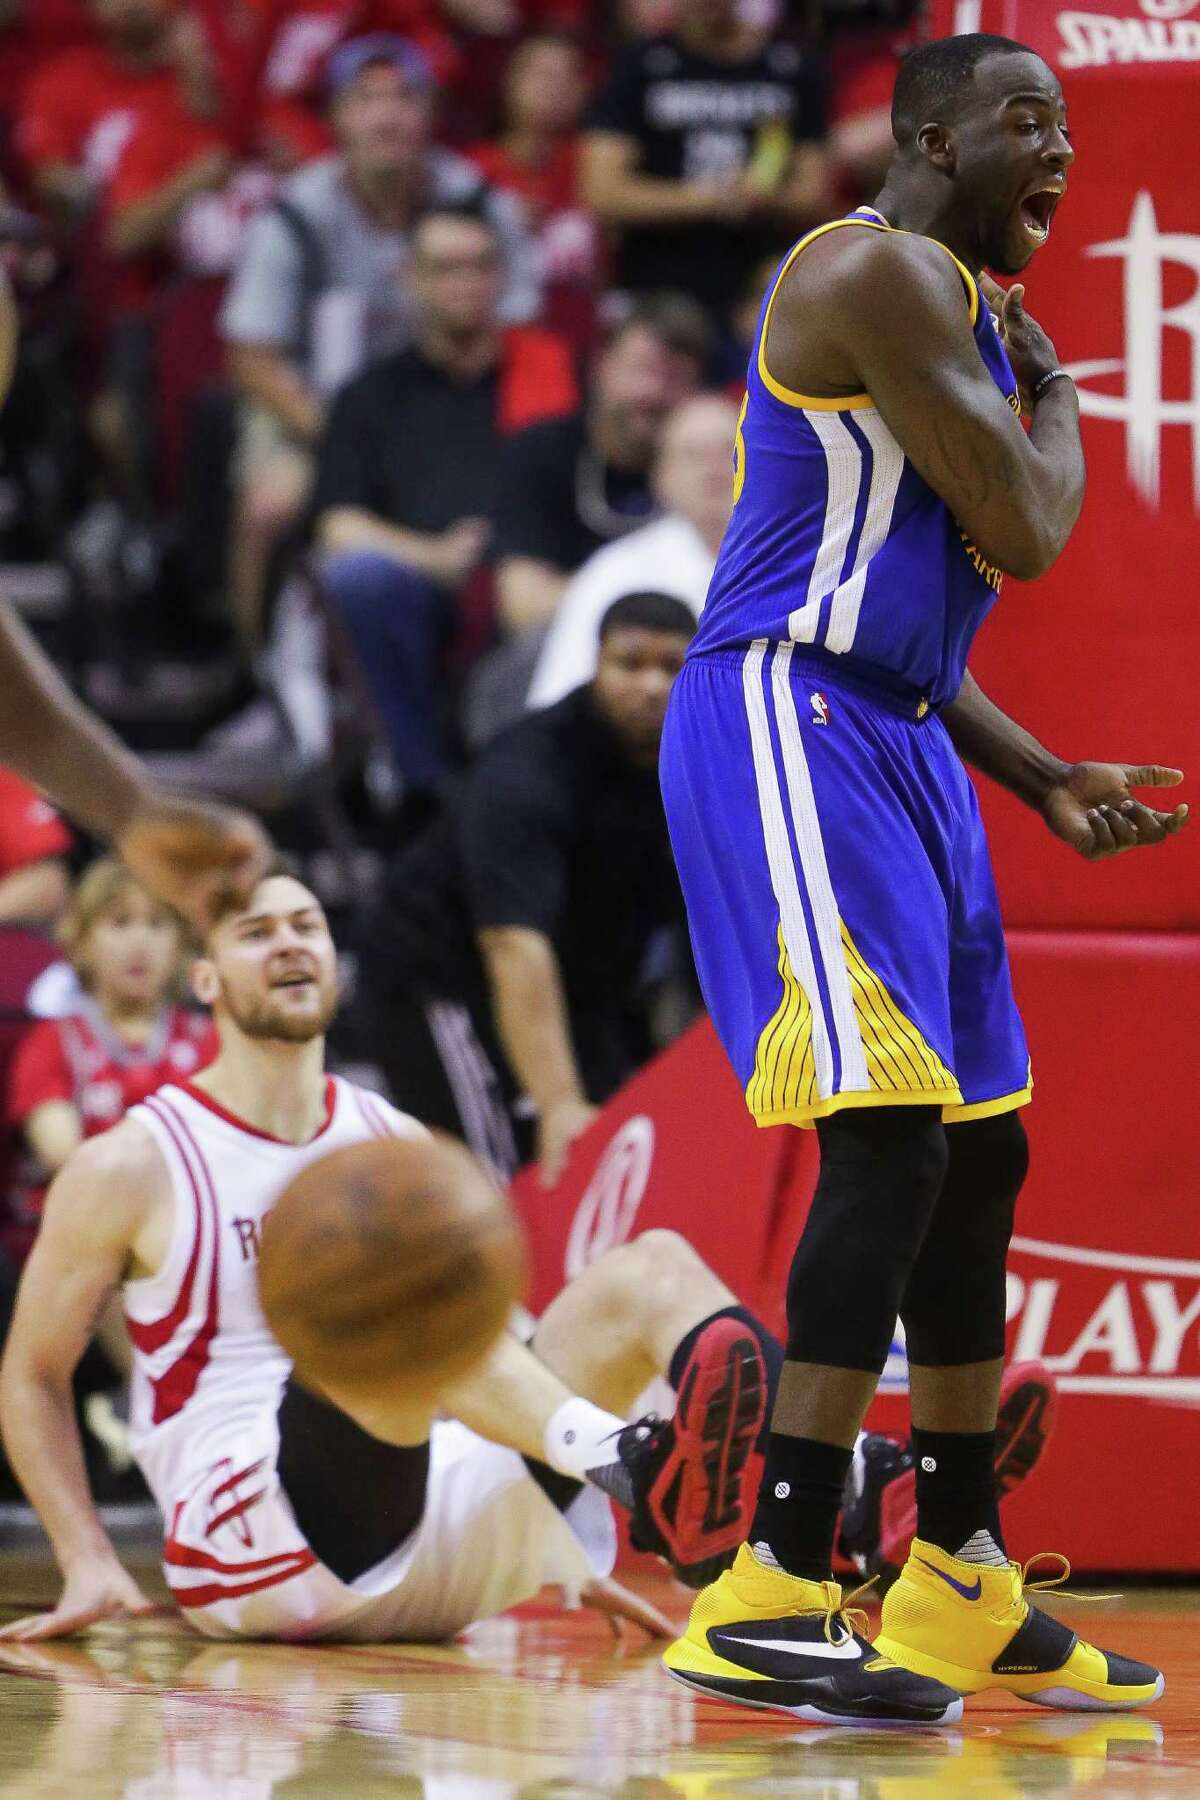 Matching the intensity of Warriors players like Draymond Green has been an issue for the Rockets, especially when playing in Oakland's Oracle Arena.